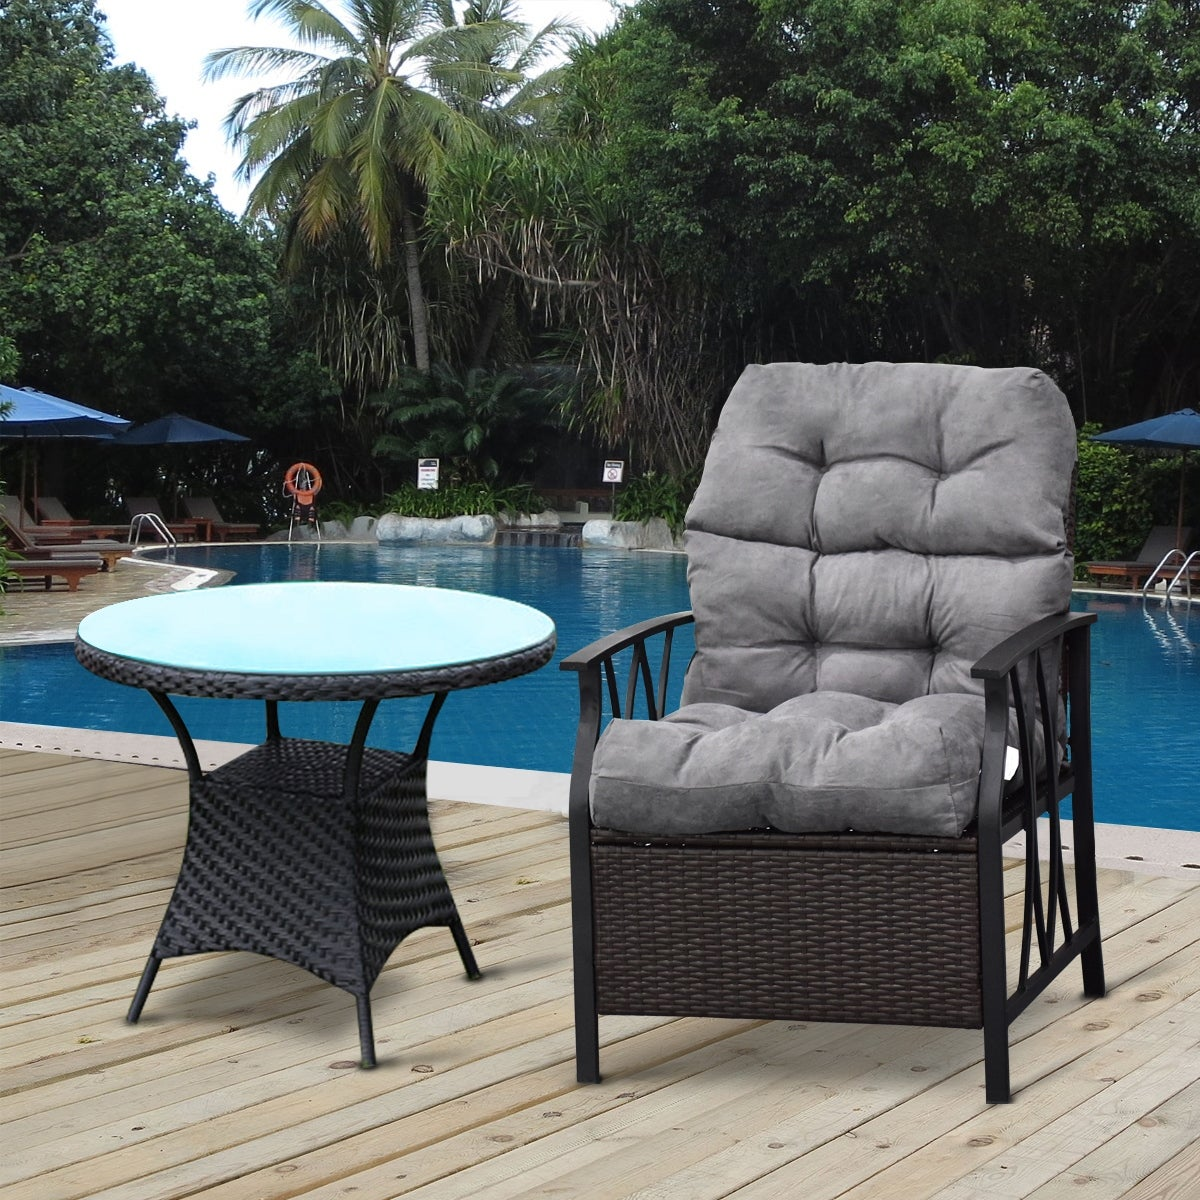 Costway 44 high back chair cushiontufted pillow indoor outdoor swing glider seat gray